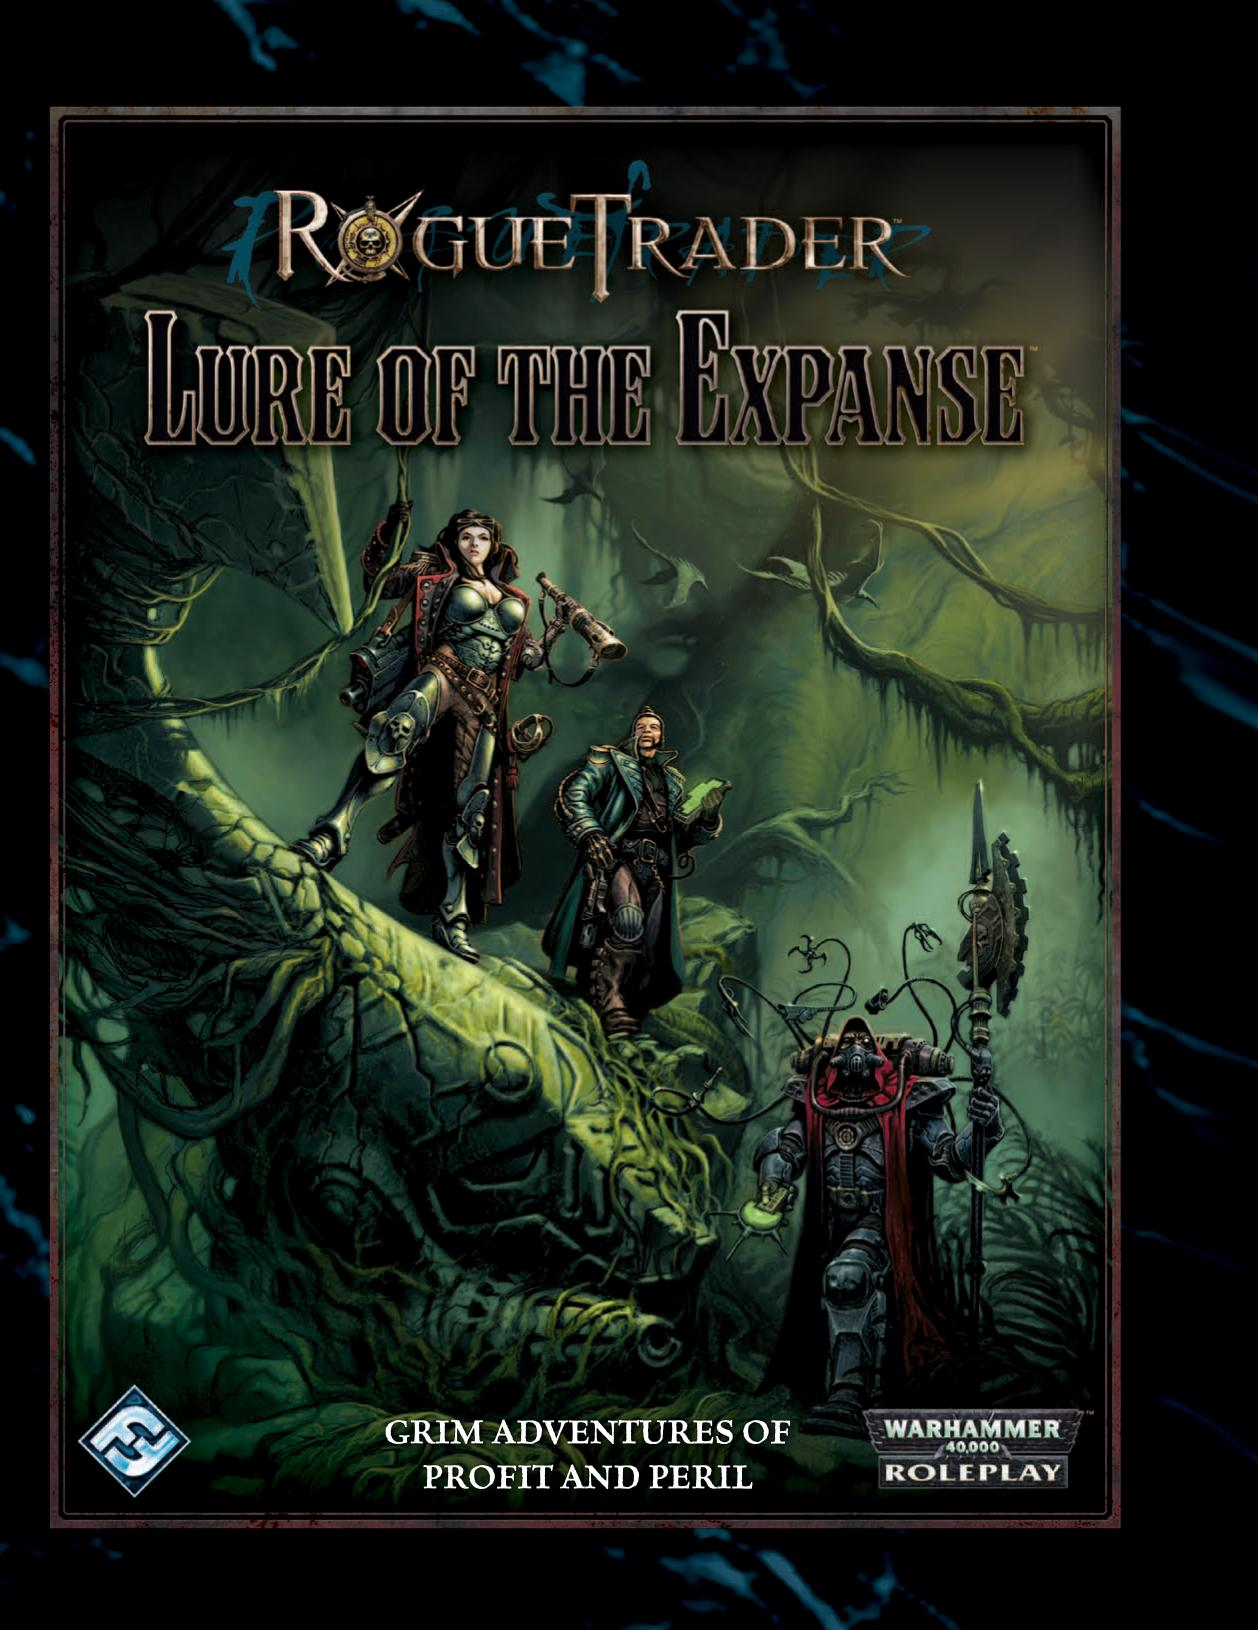 rogue trader lure of the expanse adventure 40k rpg tools